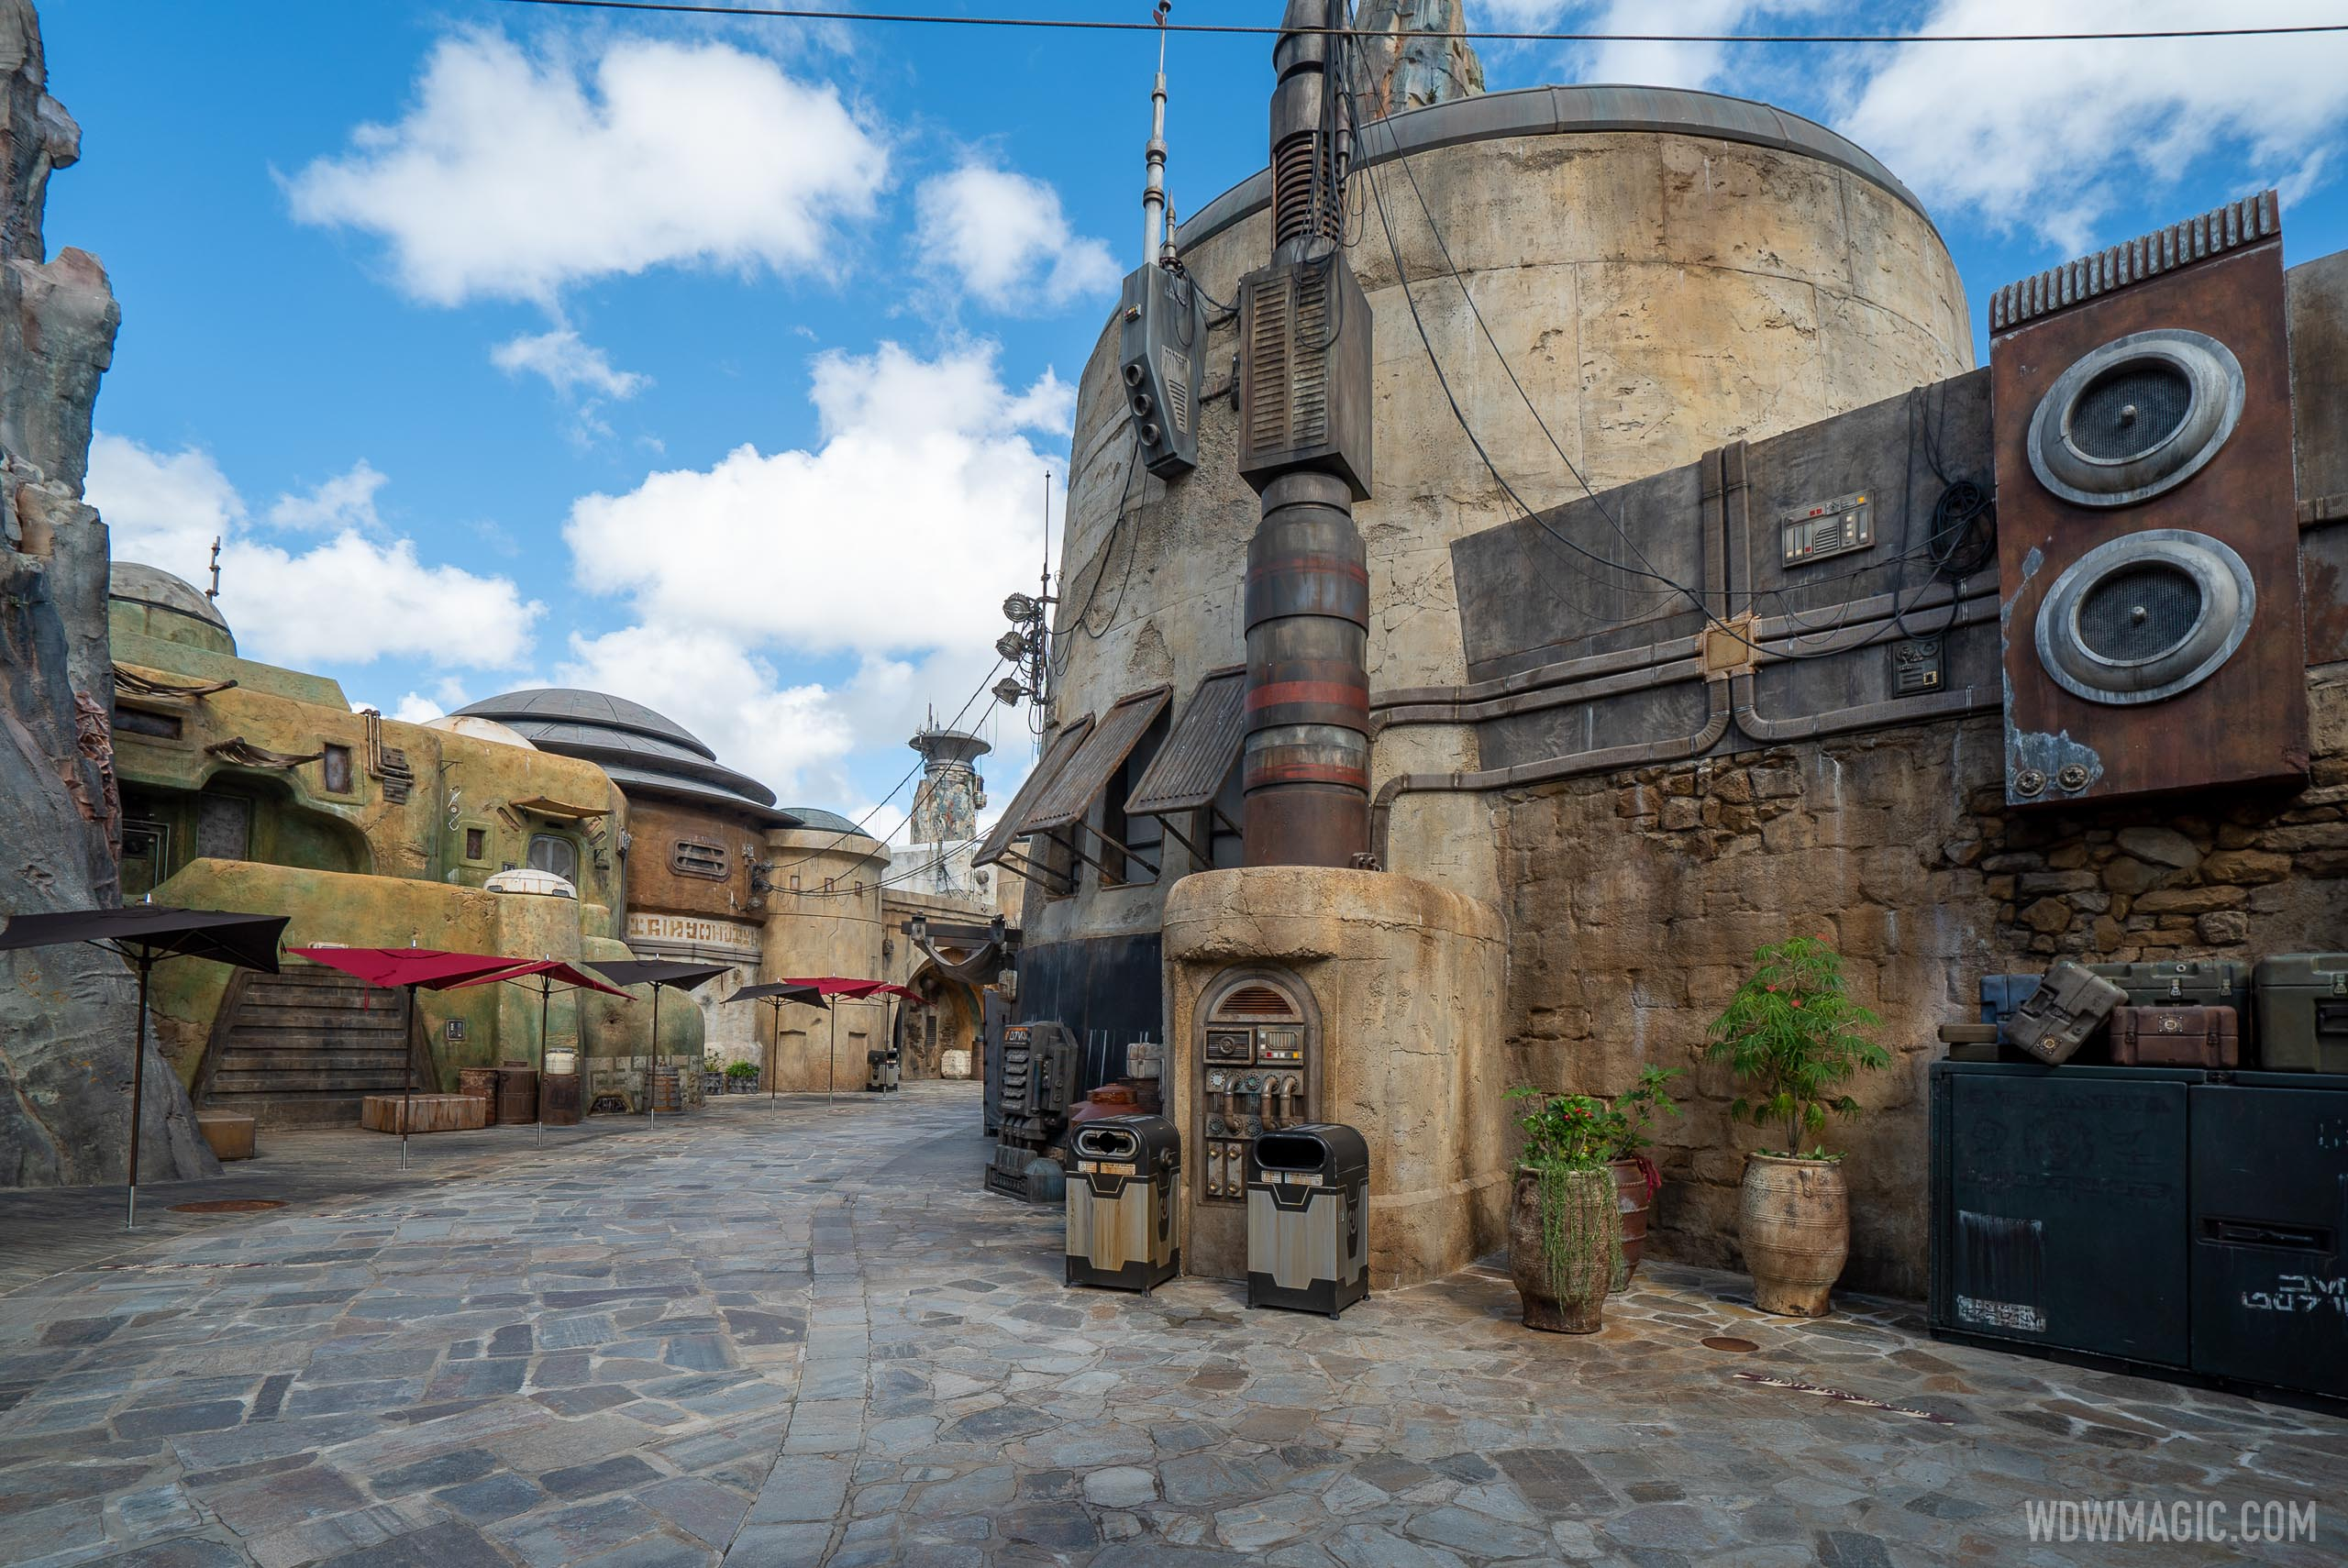 Star Wars Galaxy's Edge was expected to be a huge draw for visitors to Florida this summer